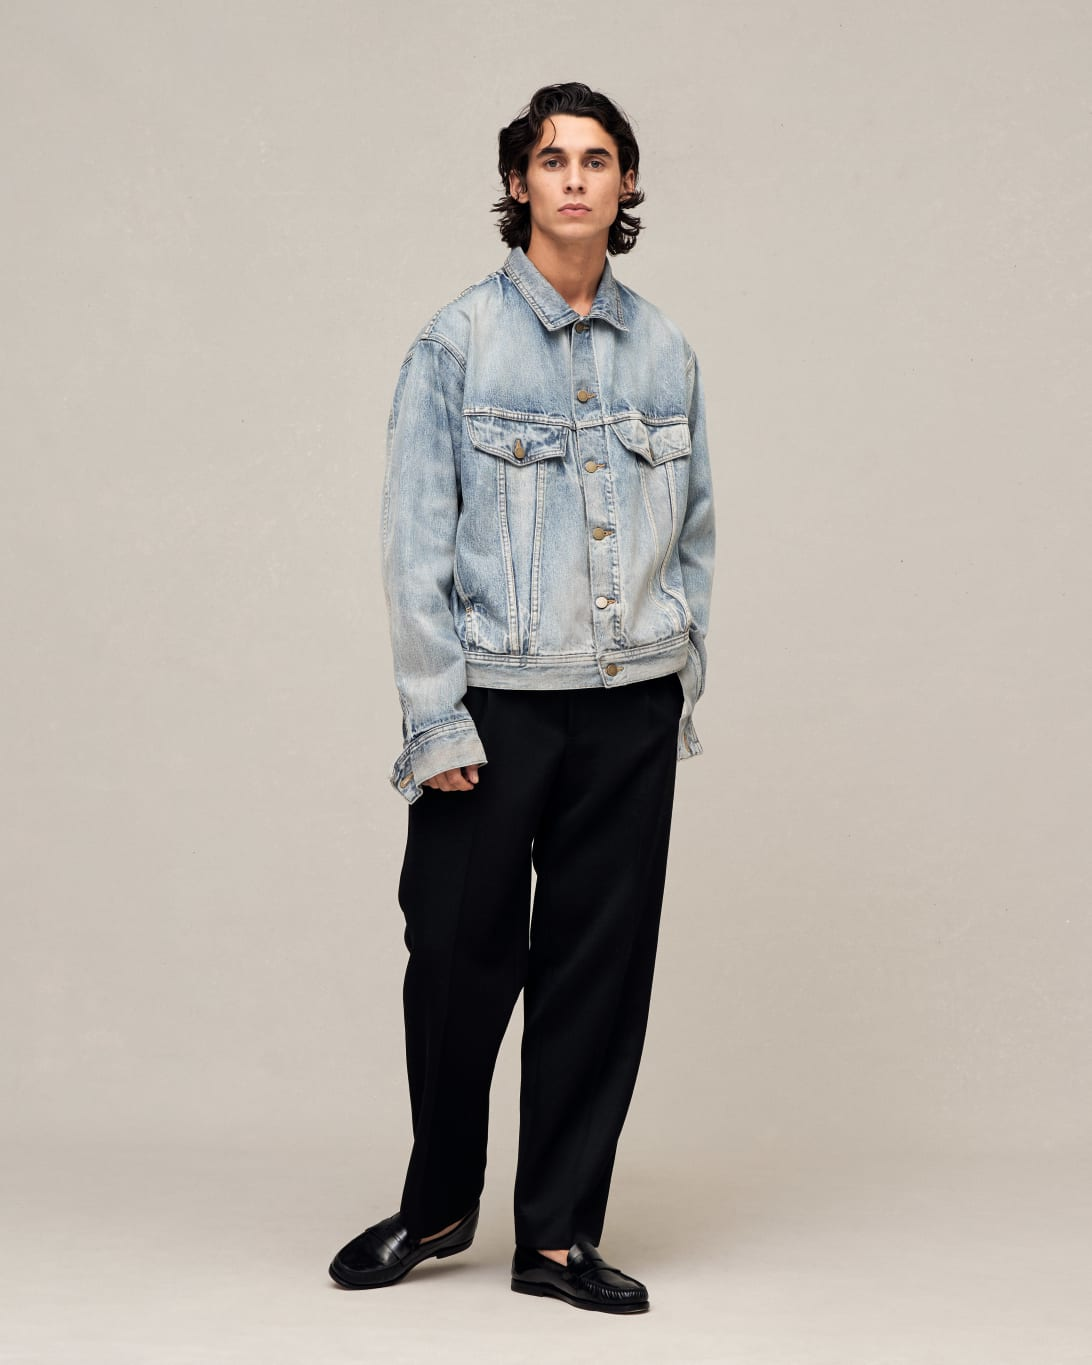 Seventh Collection | Fall/Winter Lookbook Look 32